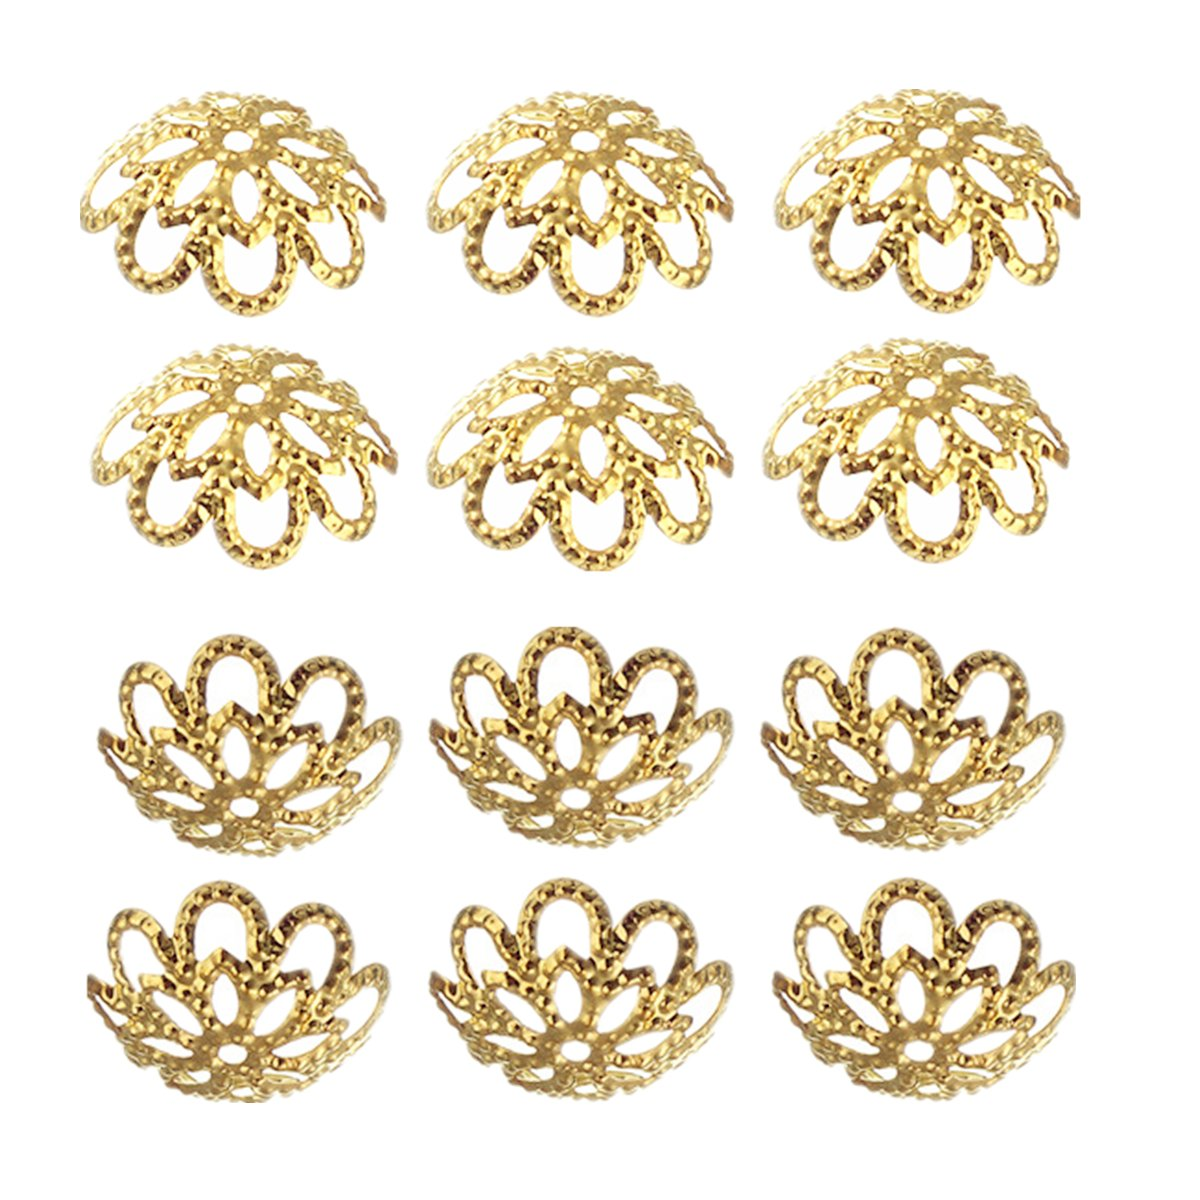 500PCS 10mm Gold Tone Flower Bead Caps Hollow Flower Bead Caps For Jewelry Making (white k) Zhiheng